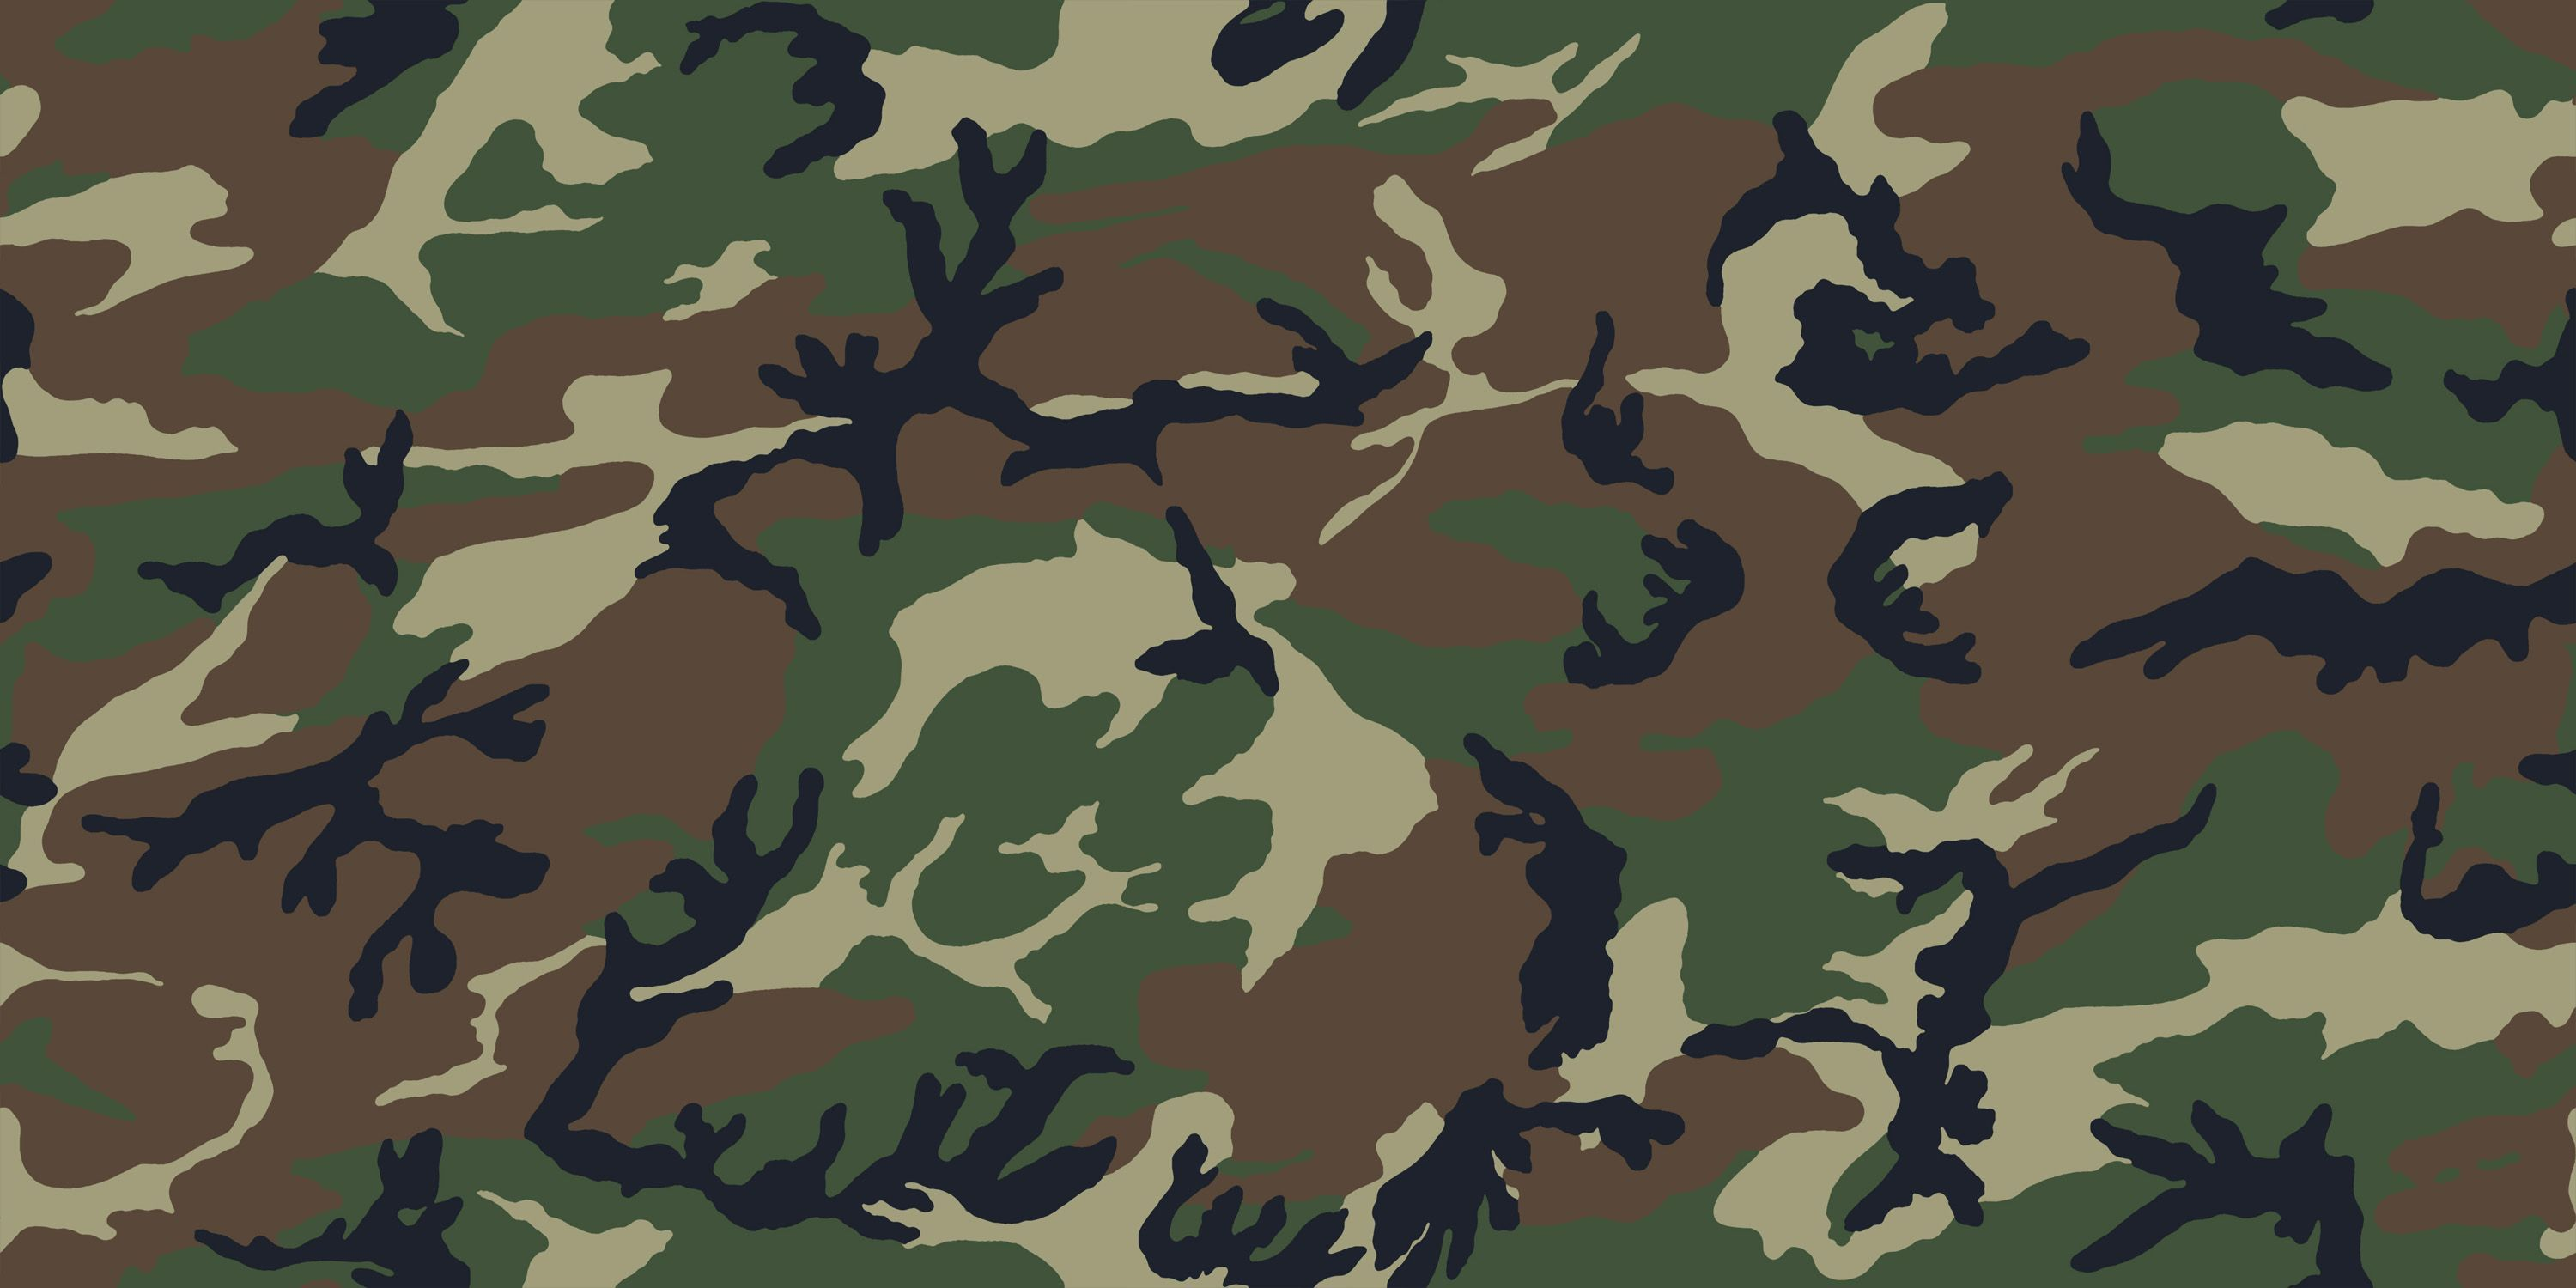 28 Free Camouflage Hd And Desktop Backgrounds: Camo Wallpaper For Phone HD Wallpapers Pinterest Best Camo